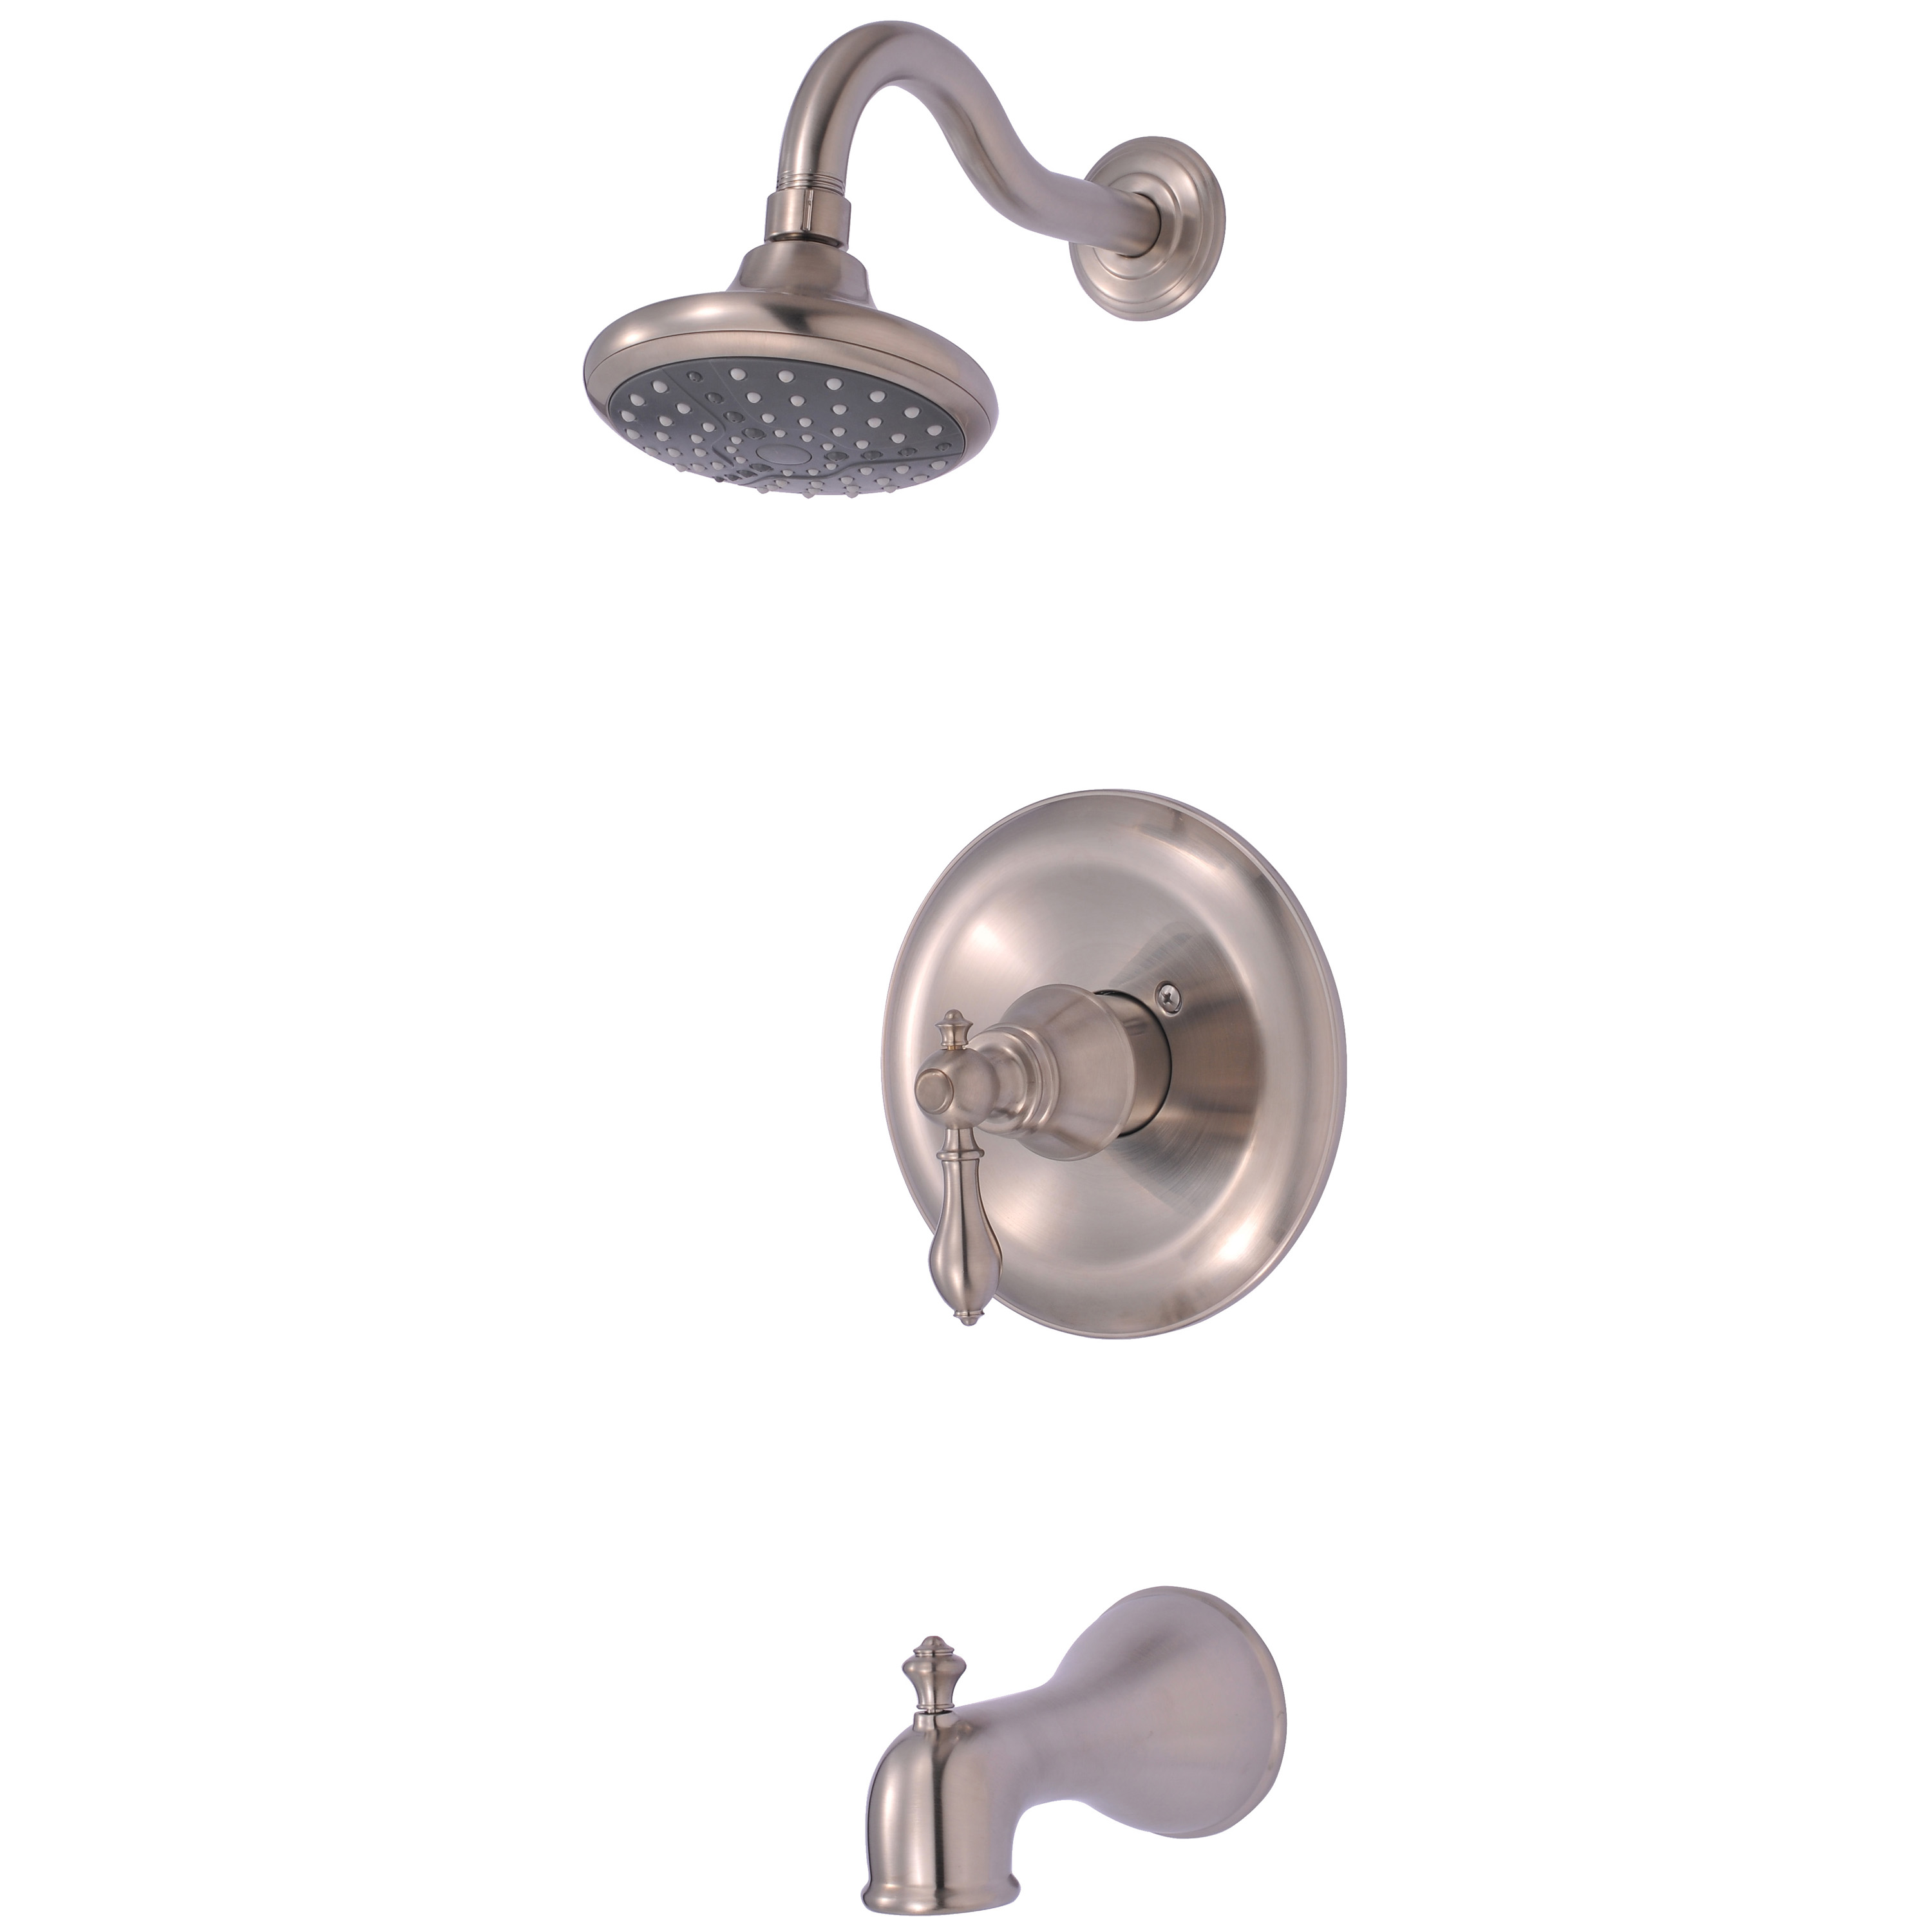 delta of with a faucet shower handles farmlandcanada series lever bathtub bath sink tub furniture parts replace home rp monitor info